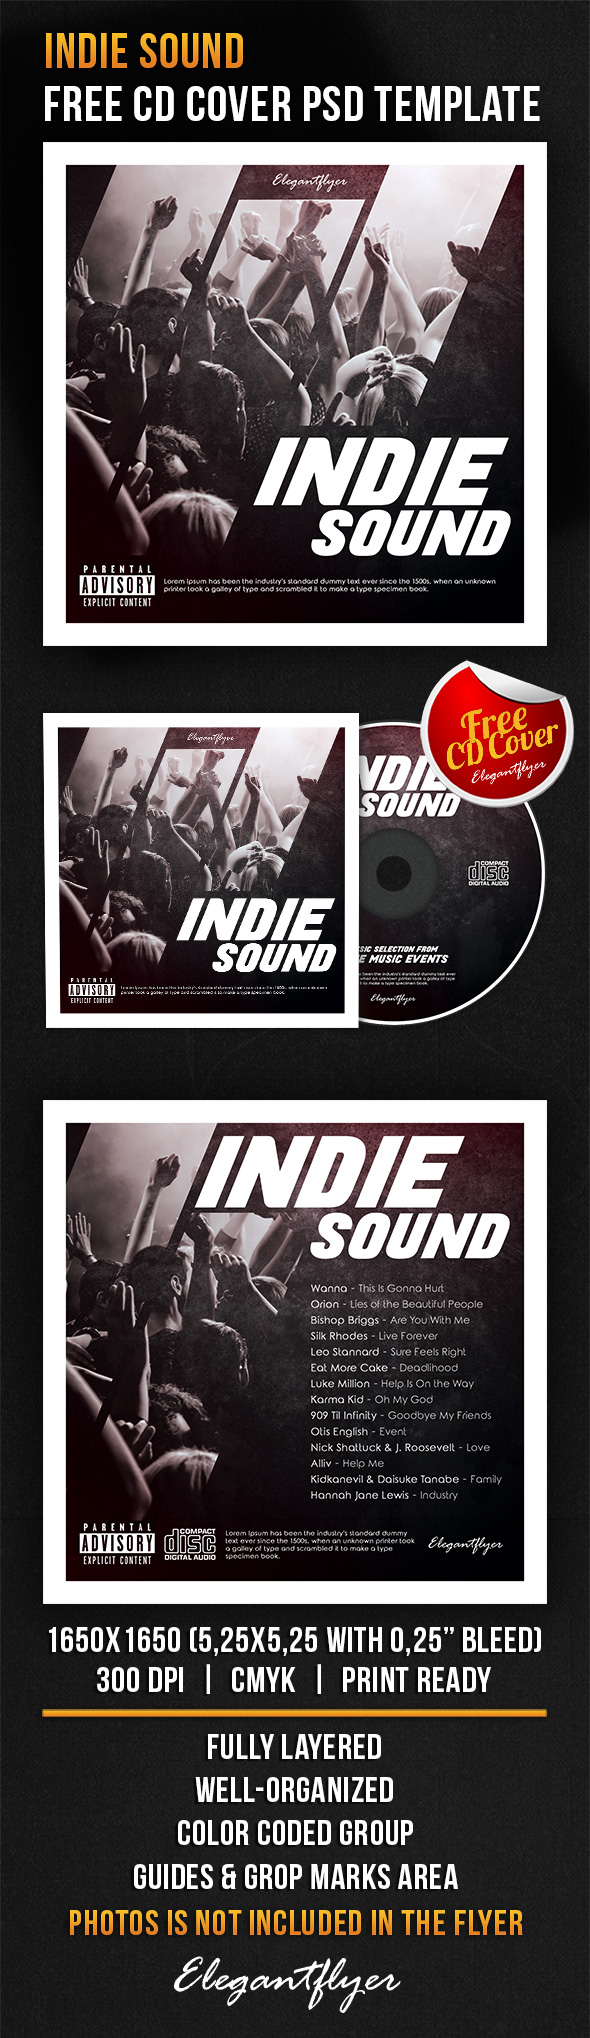 Indie Sound – Free CD Cover PSD Template | Free CD & DVD cover ...